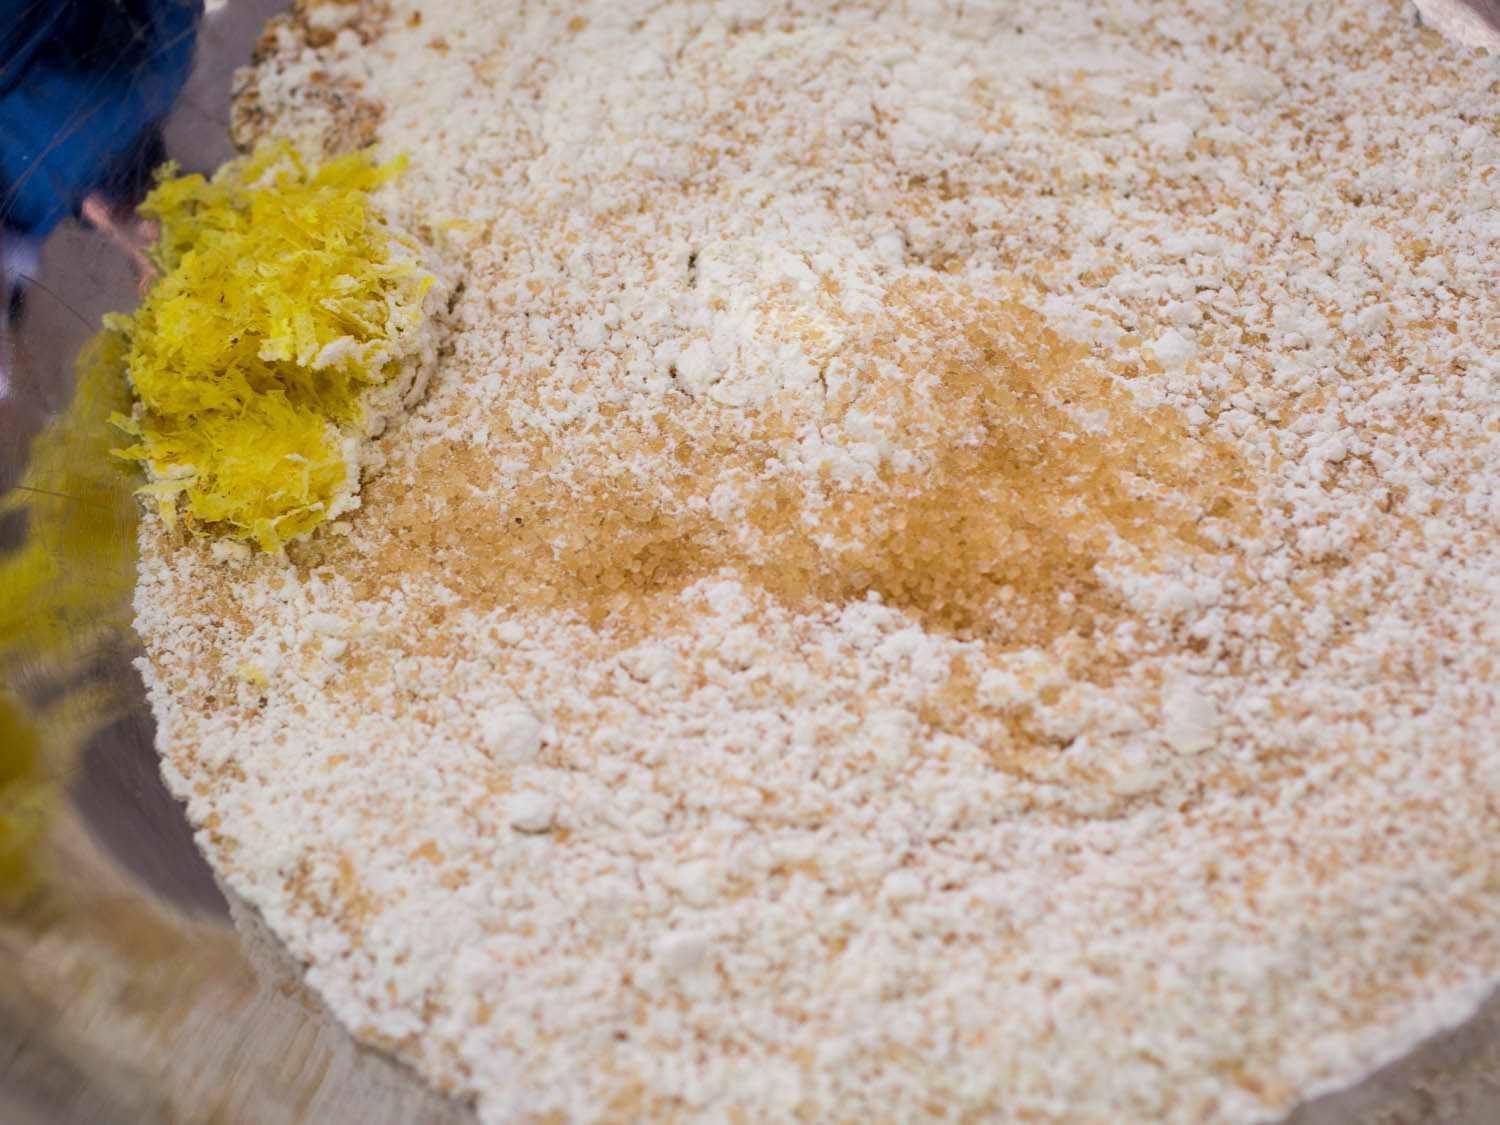 Flour, sugar, and lemon zest for crumb topping